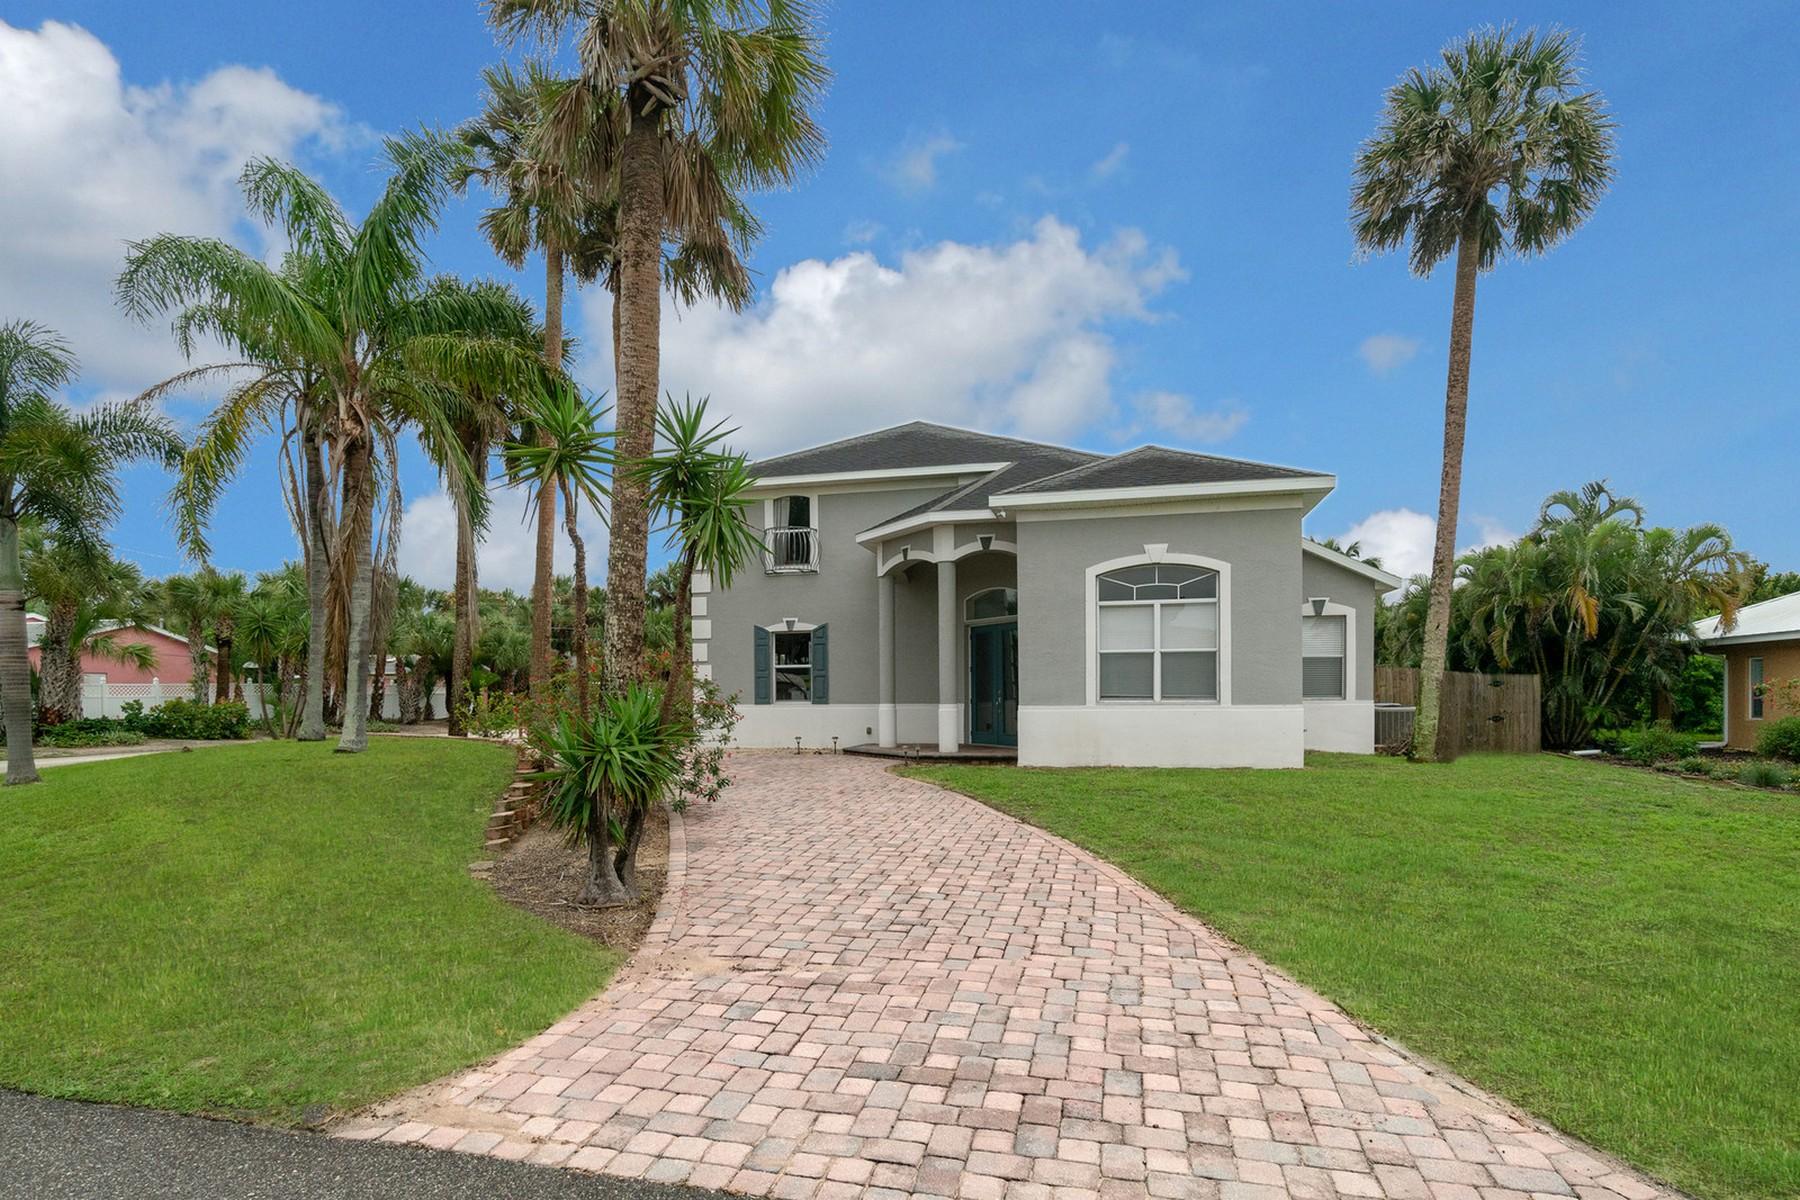 Single Family Homes for Sale at Wilcox Melbourne Beach 301 First Avenue Melbourne Beach, Florida 32951 United States